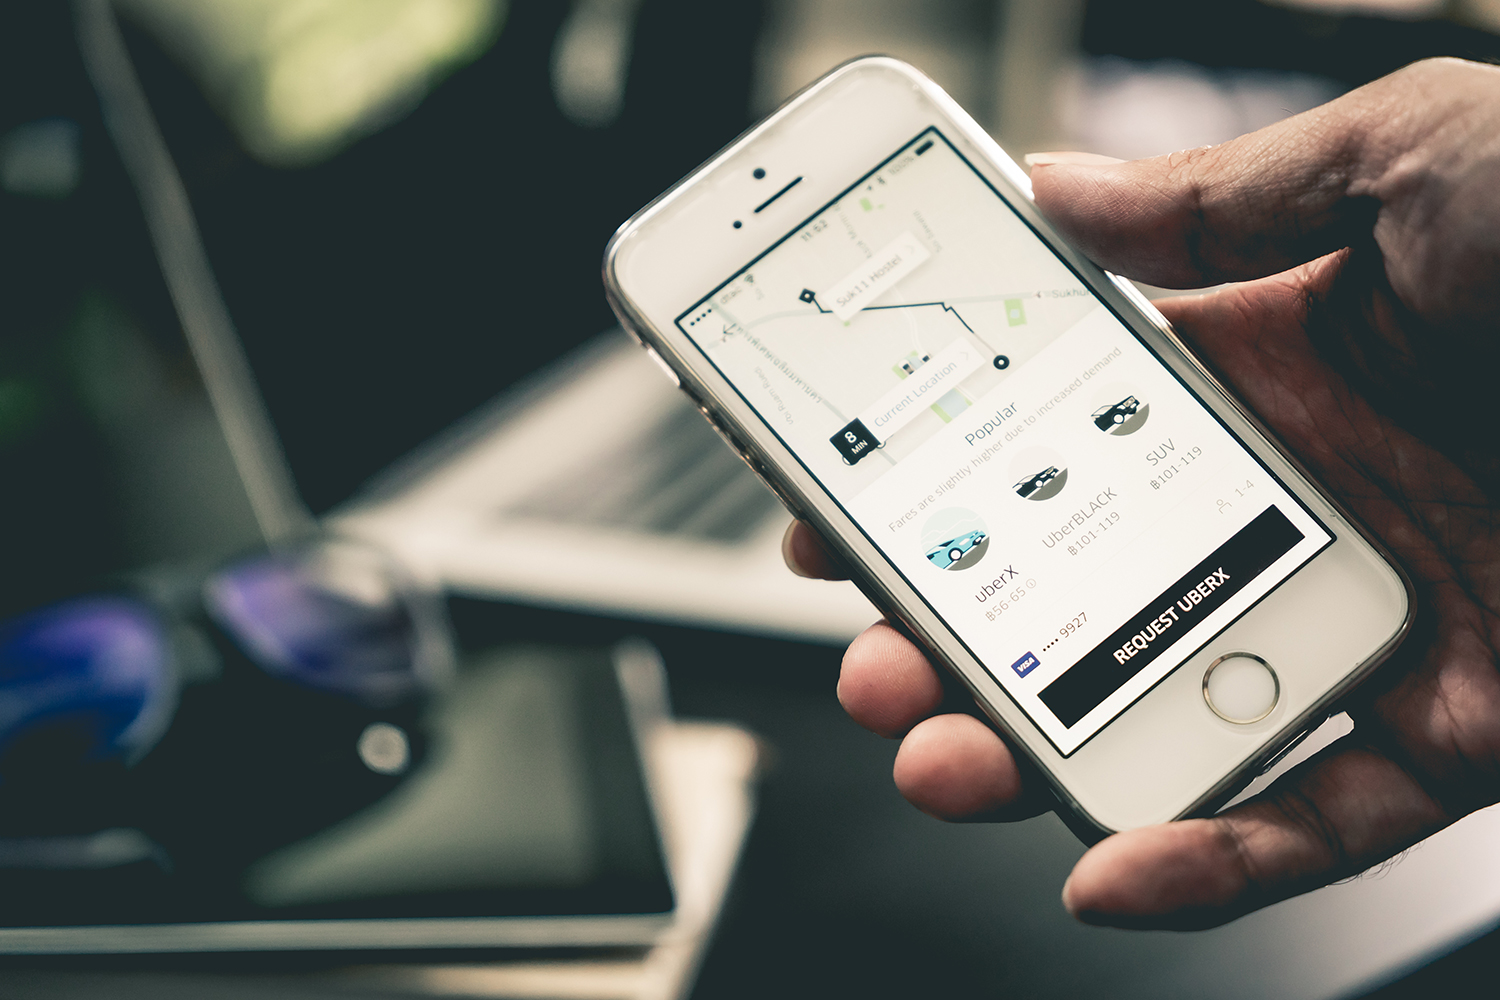 Best Uber Cars >> How To Check Your Uber Rating | Steps, Stars, Pictures | Digital Trends